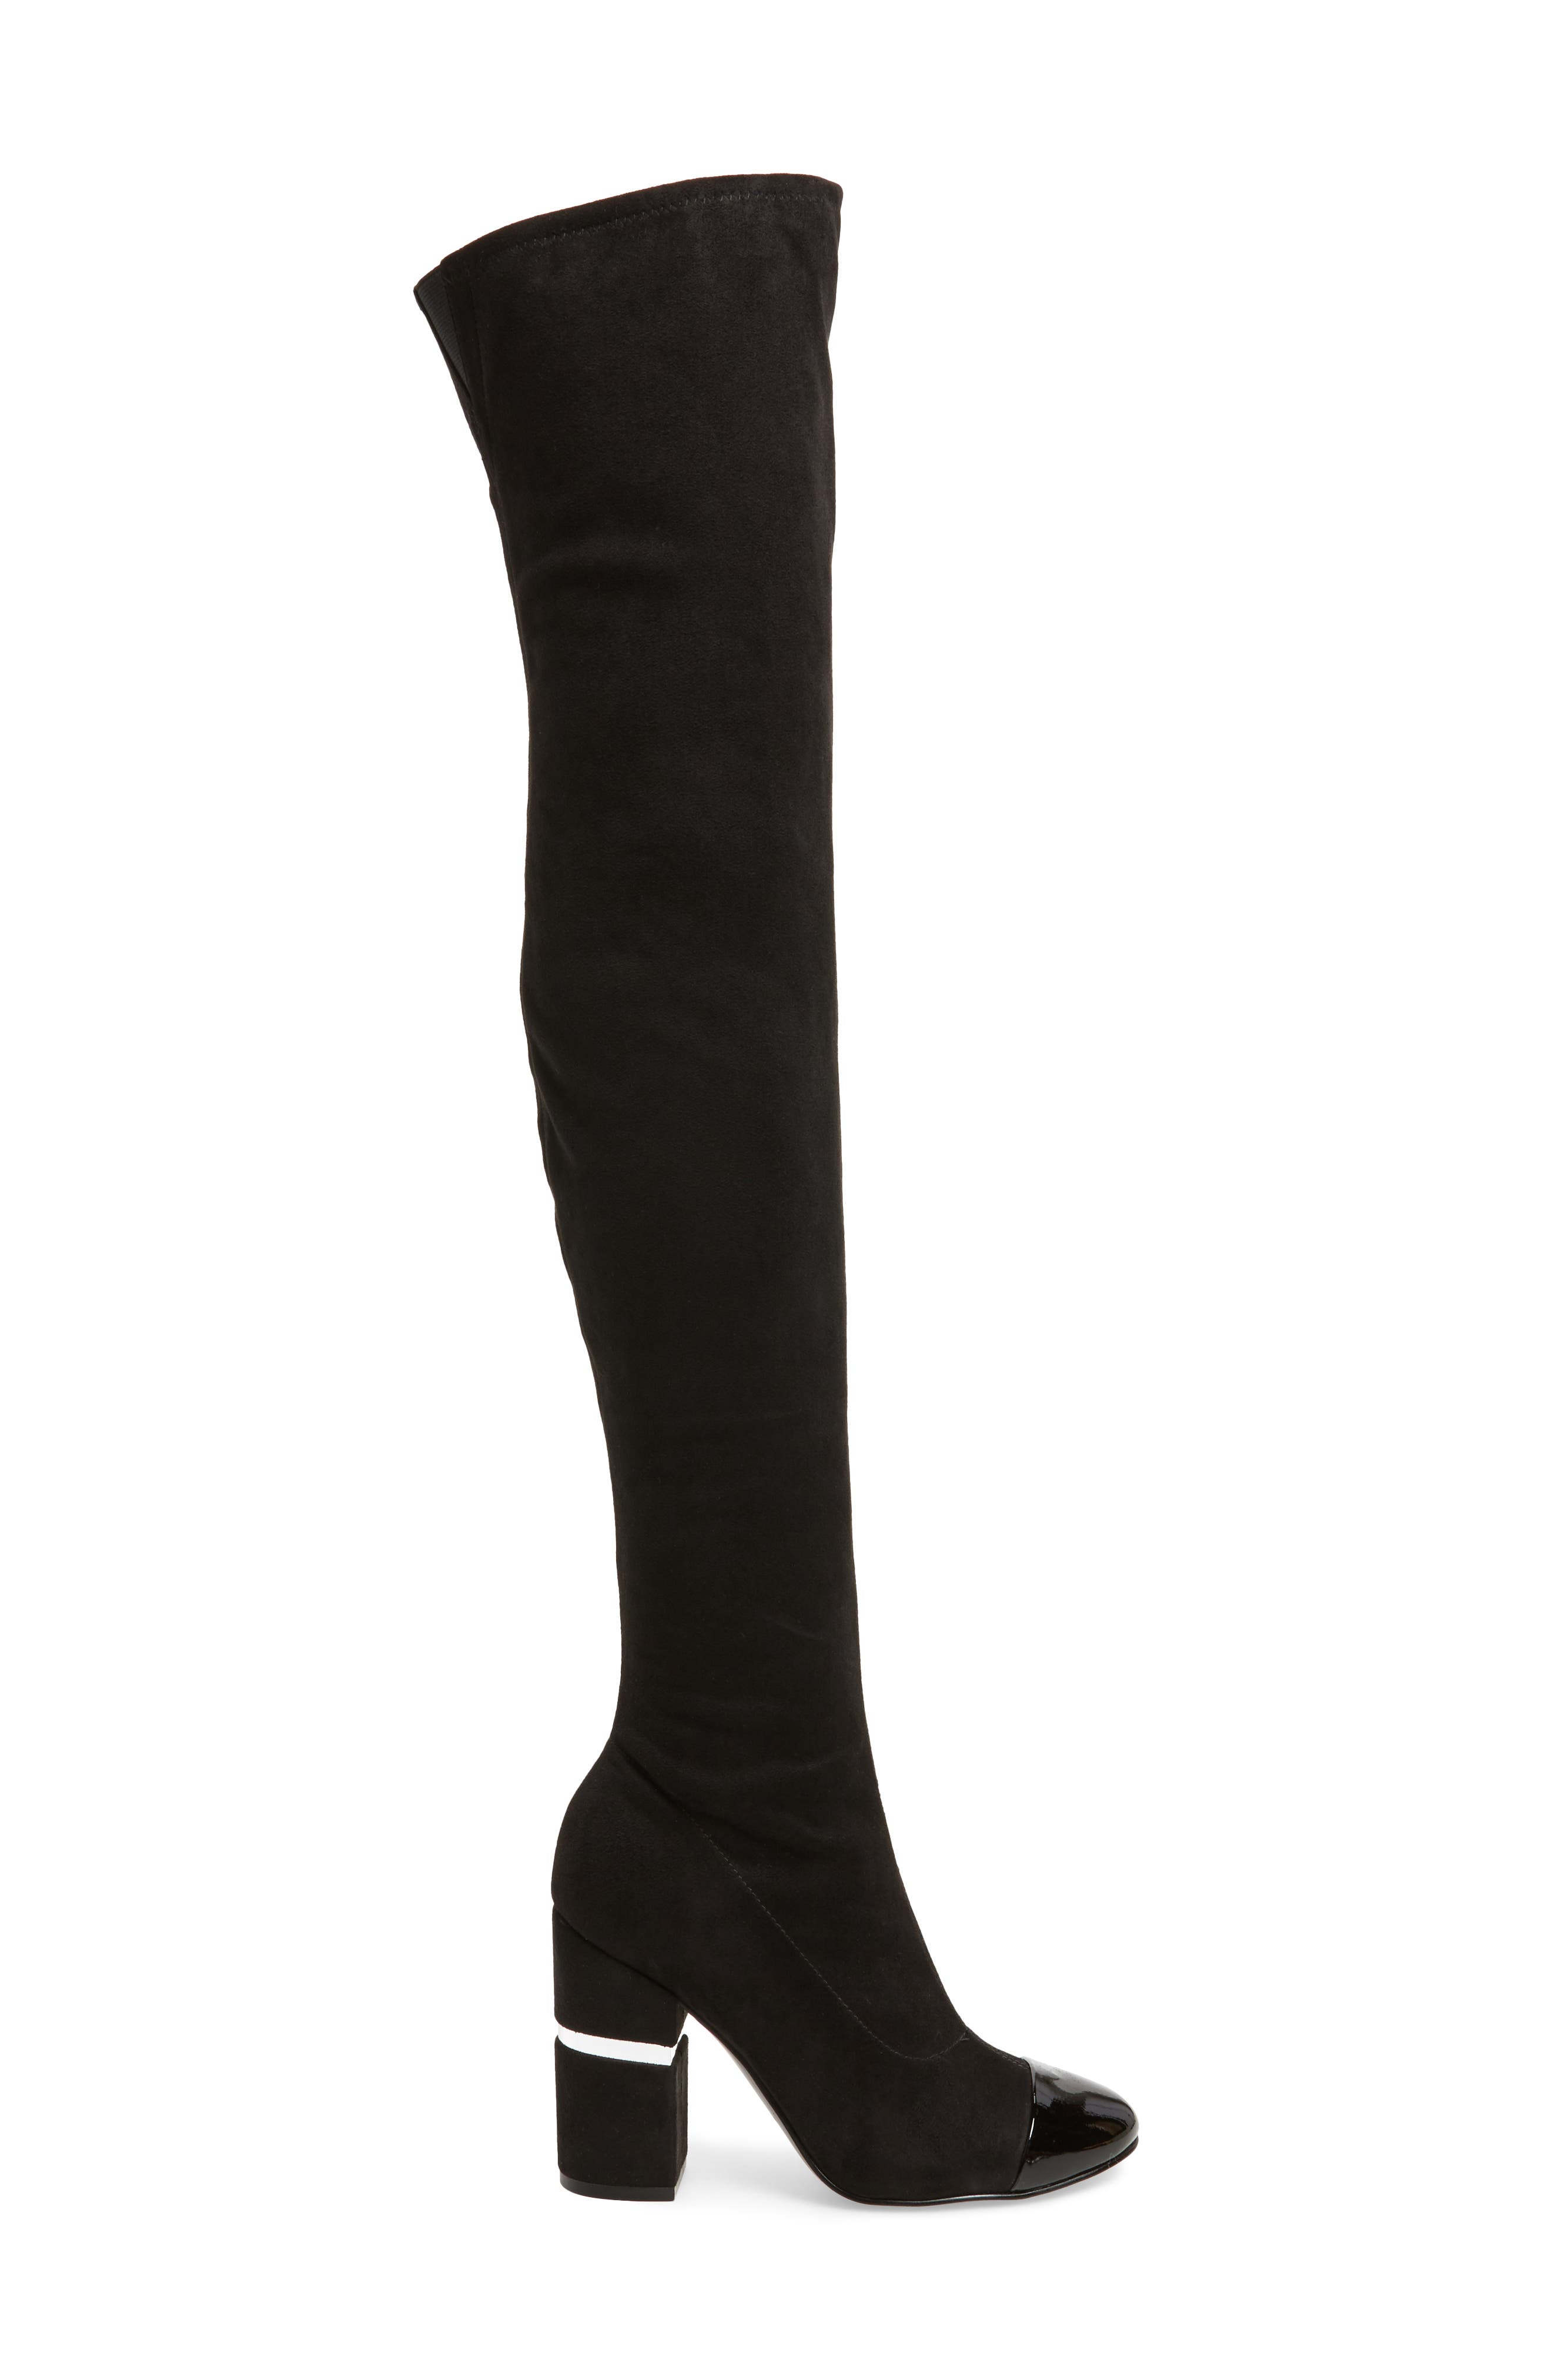 Petel Over the Knee Boot,                             Alternate thumbnail 3, color,                             001